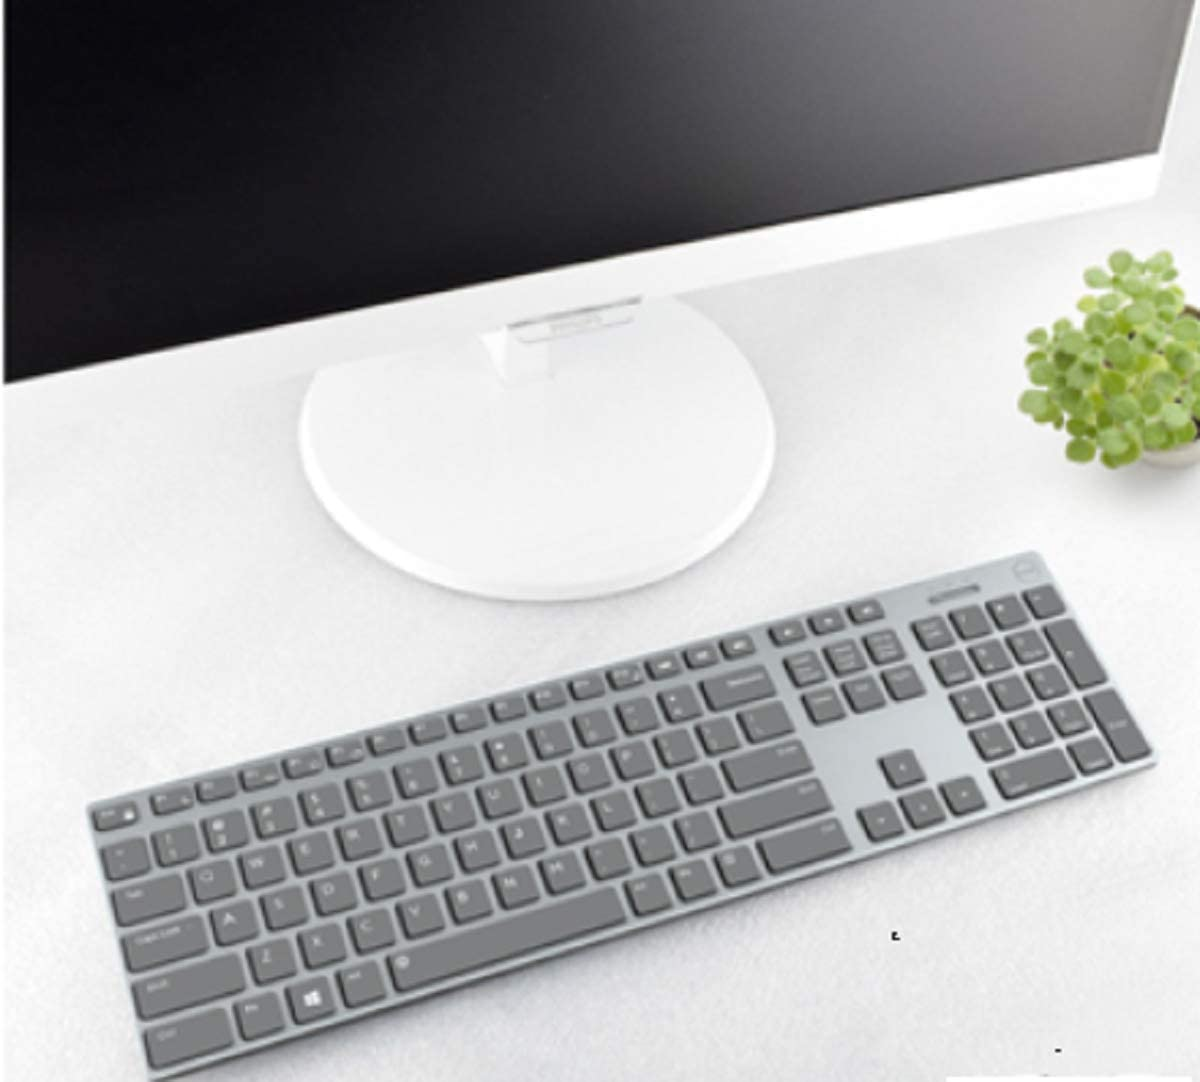 Lapogy Keyboard Silicone Cover Compatible with Dell KM717 Premier Wireless Keyboard,Ultra Thin Keyboard Proector Skin,Clear